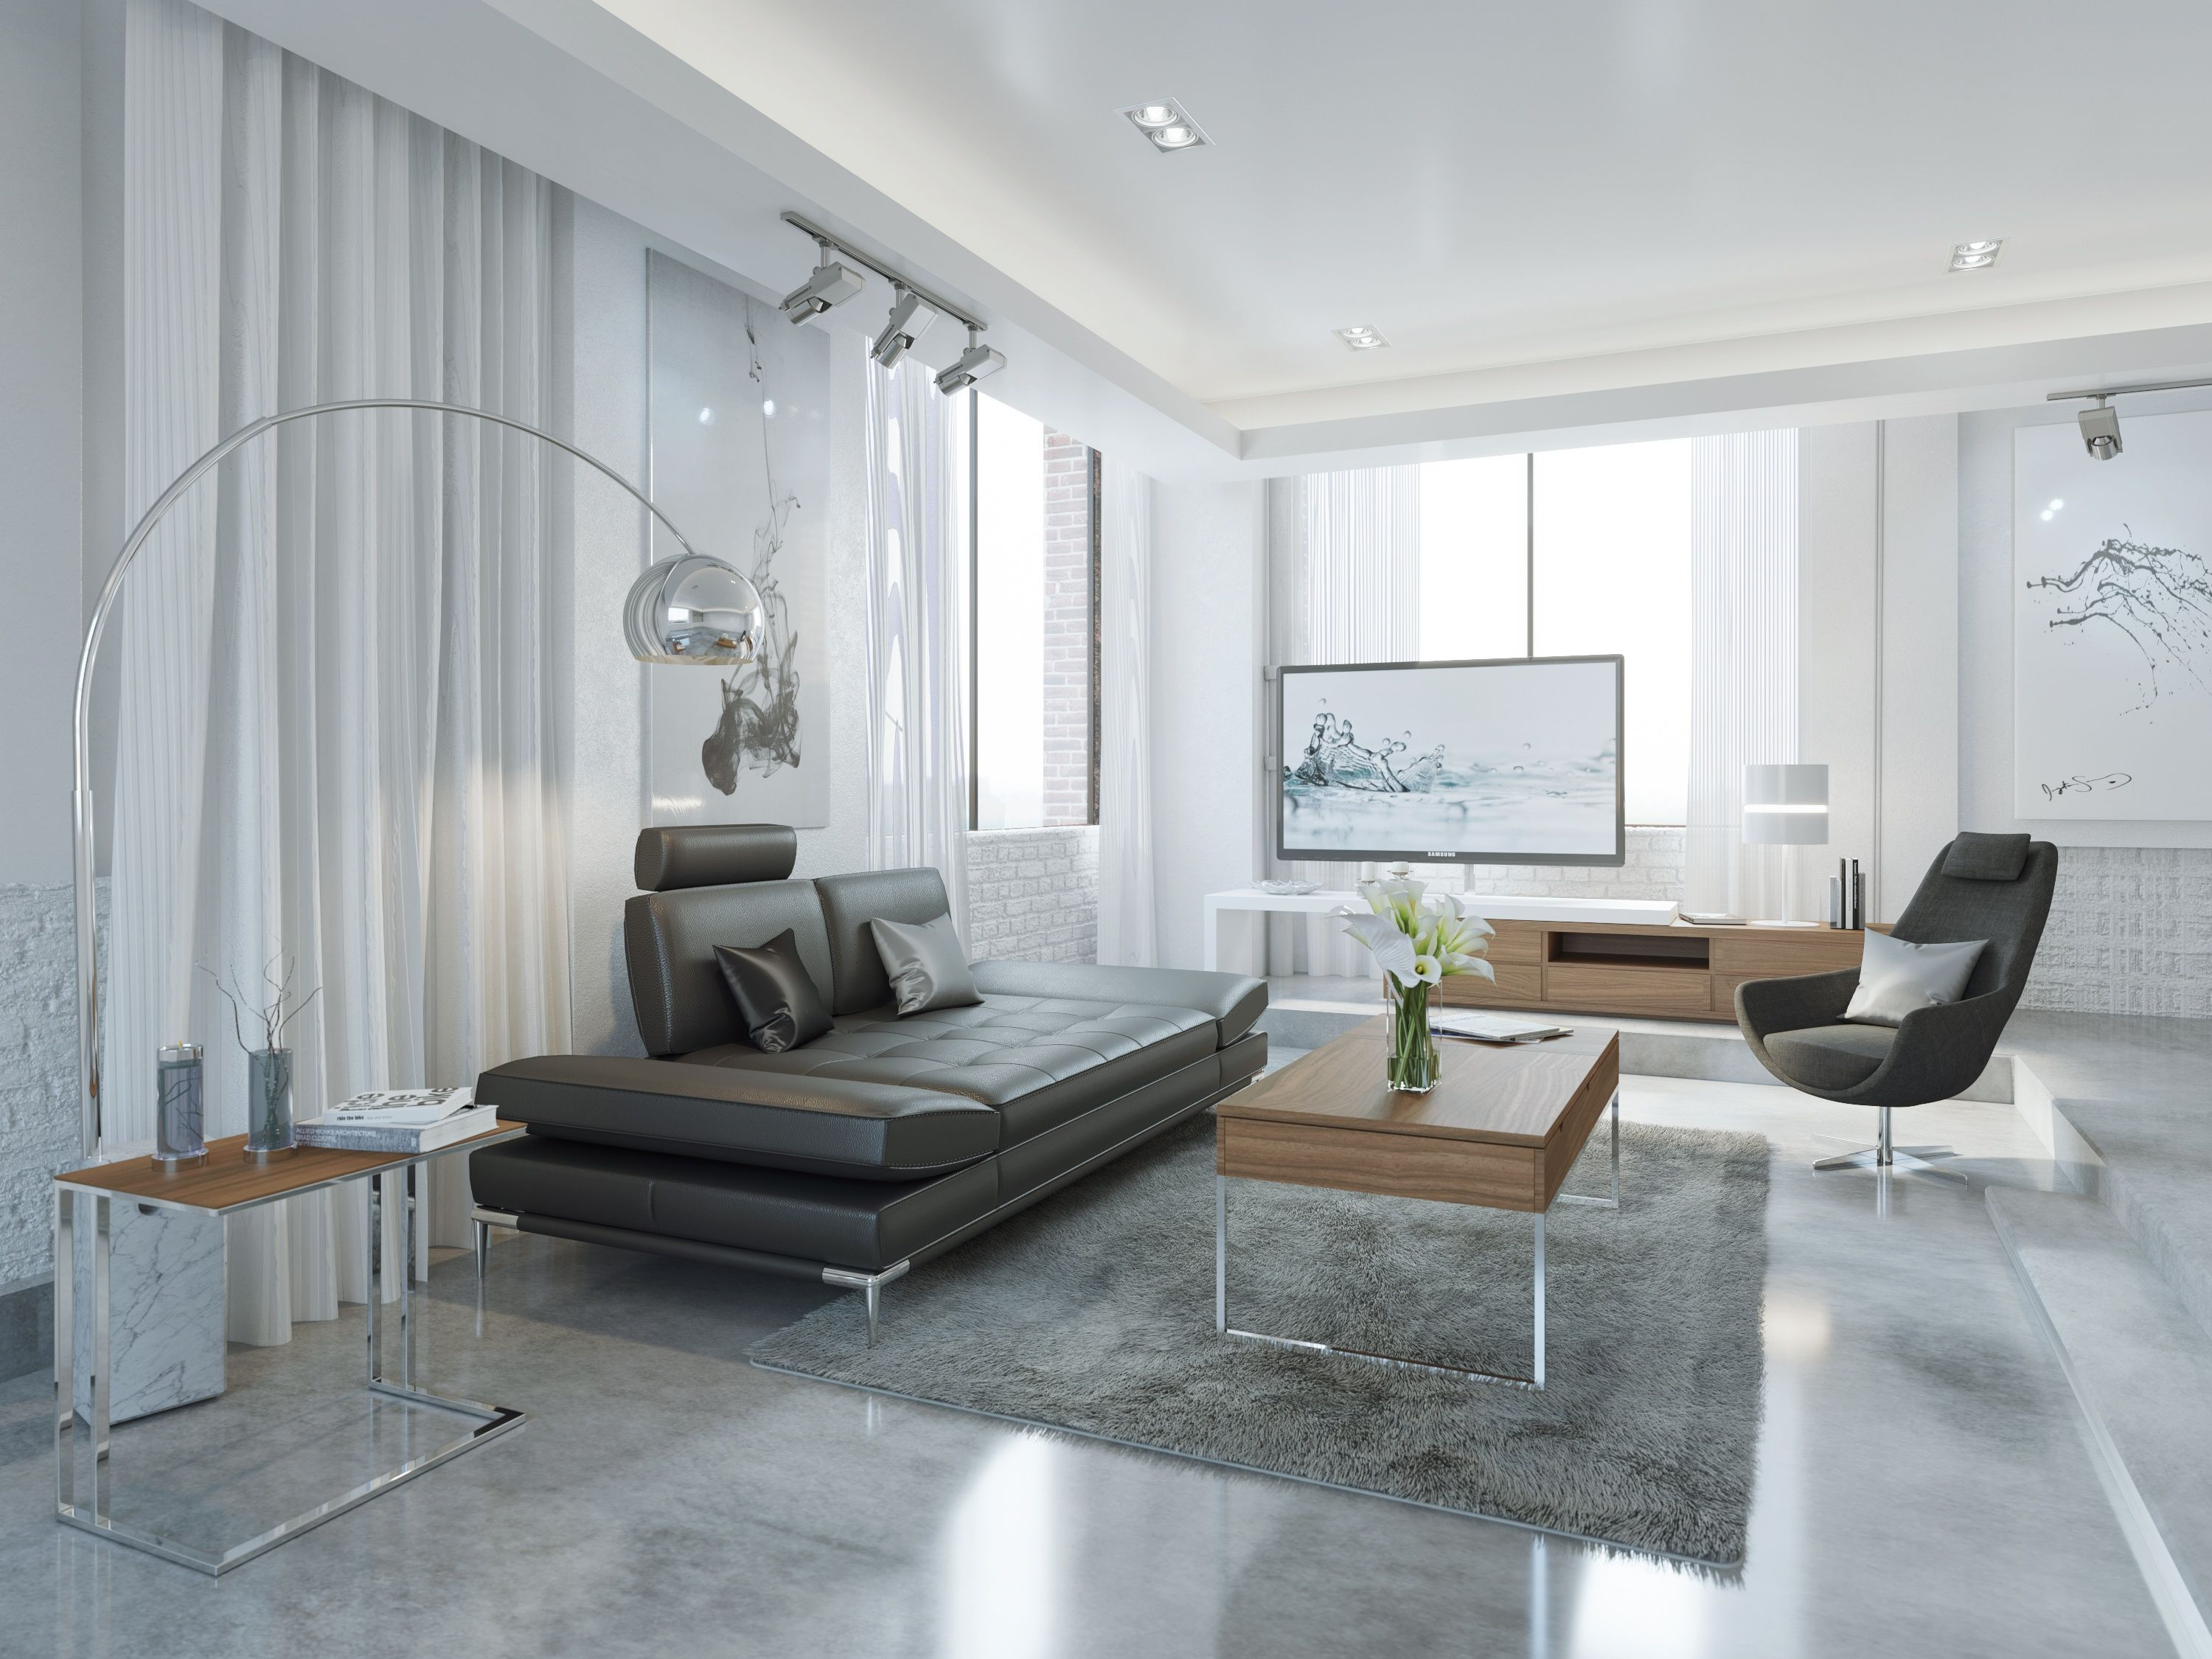 Sullivan Modern Sofa Dark Gray   With Reclining Seats And Adjustable  Armrests, This Sofa Doesn